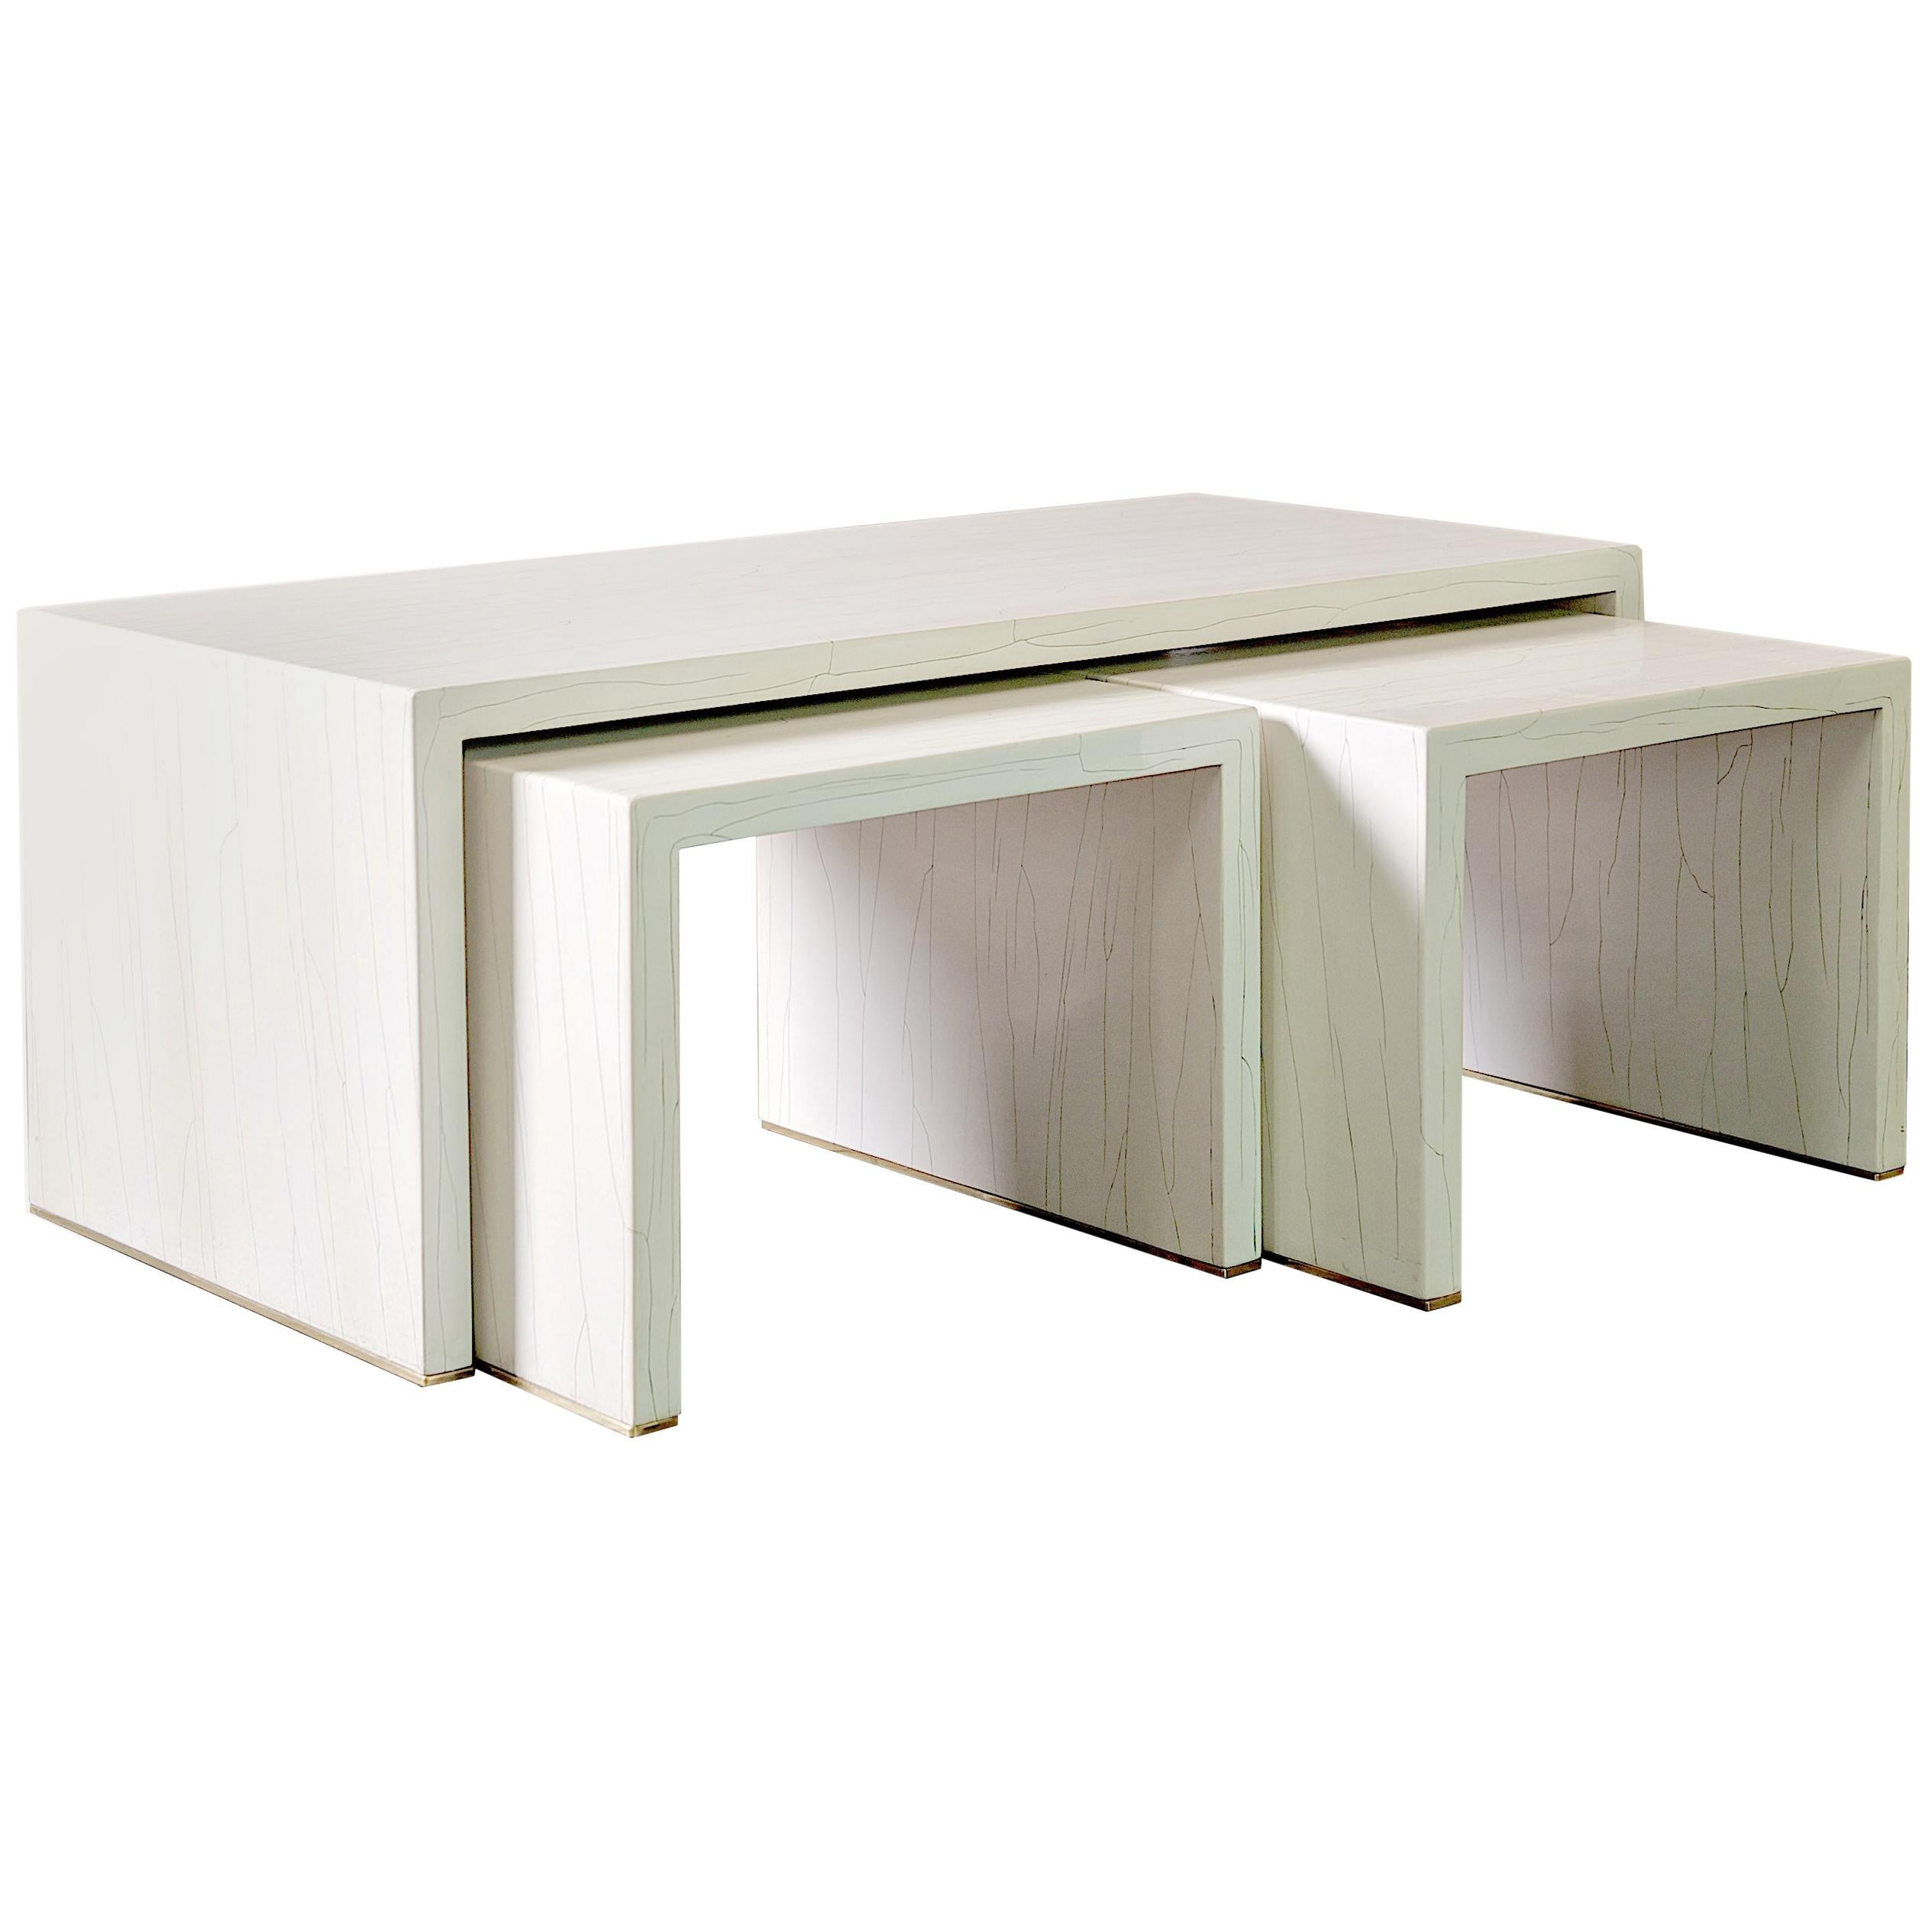 Ivory Gesso Nesting Coffee Table in White Finish by Elan Atelier